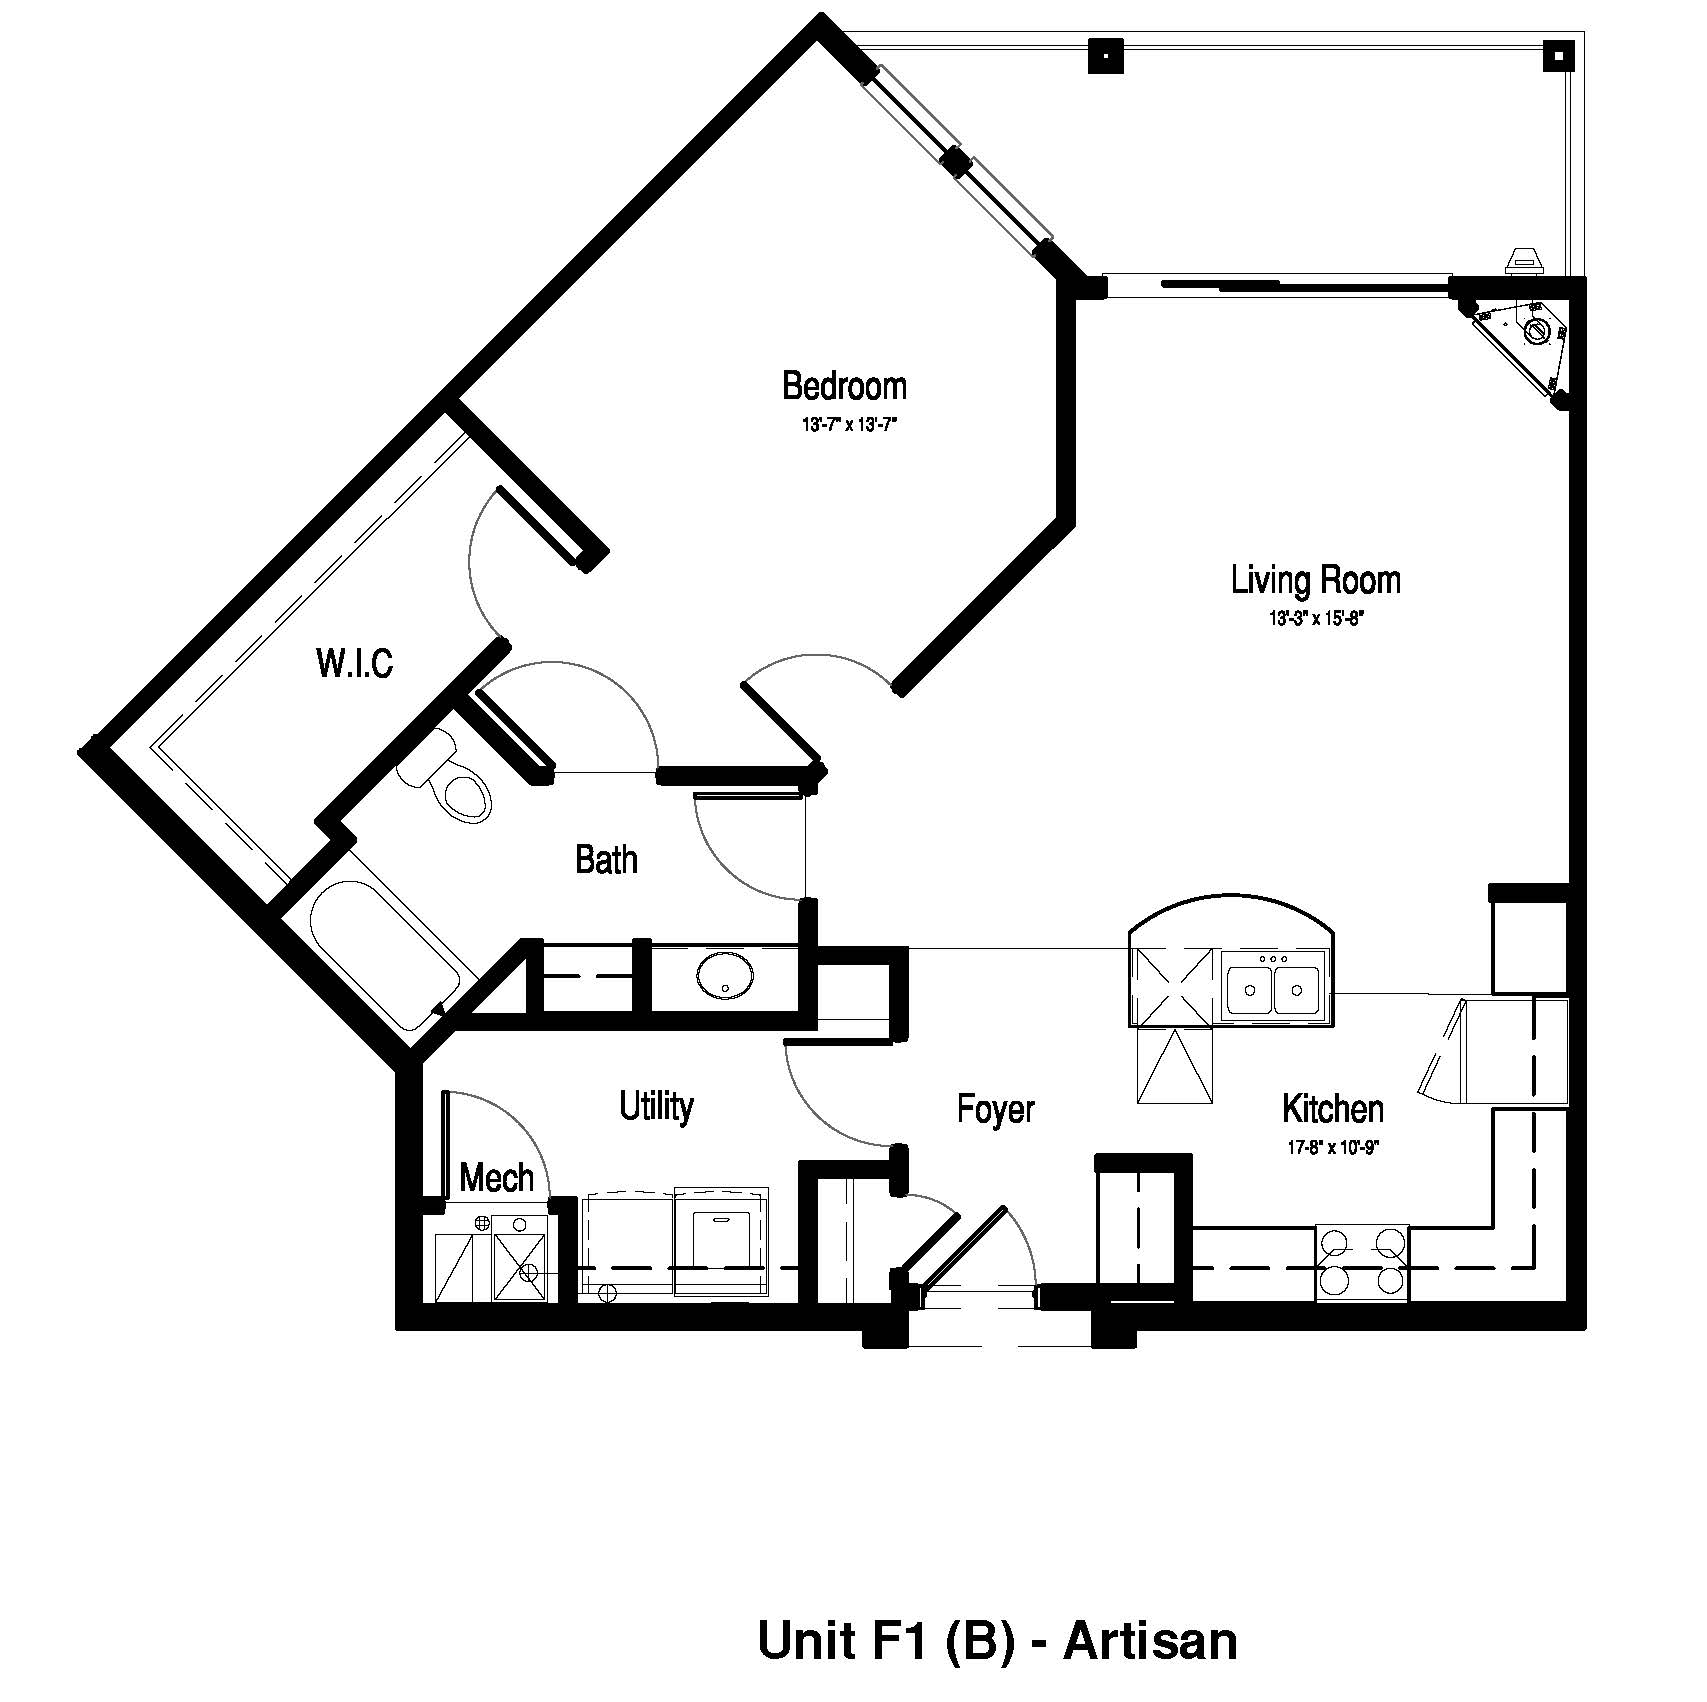 One Bedroom, One Bath - 996 Sq. Ft. - The Artisan at Georgetown Square